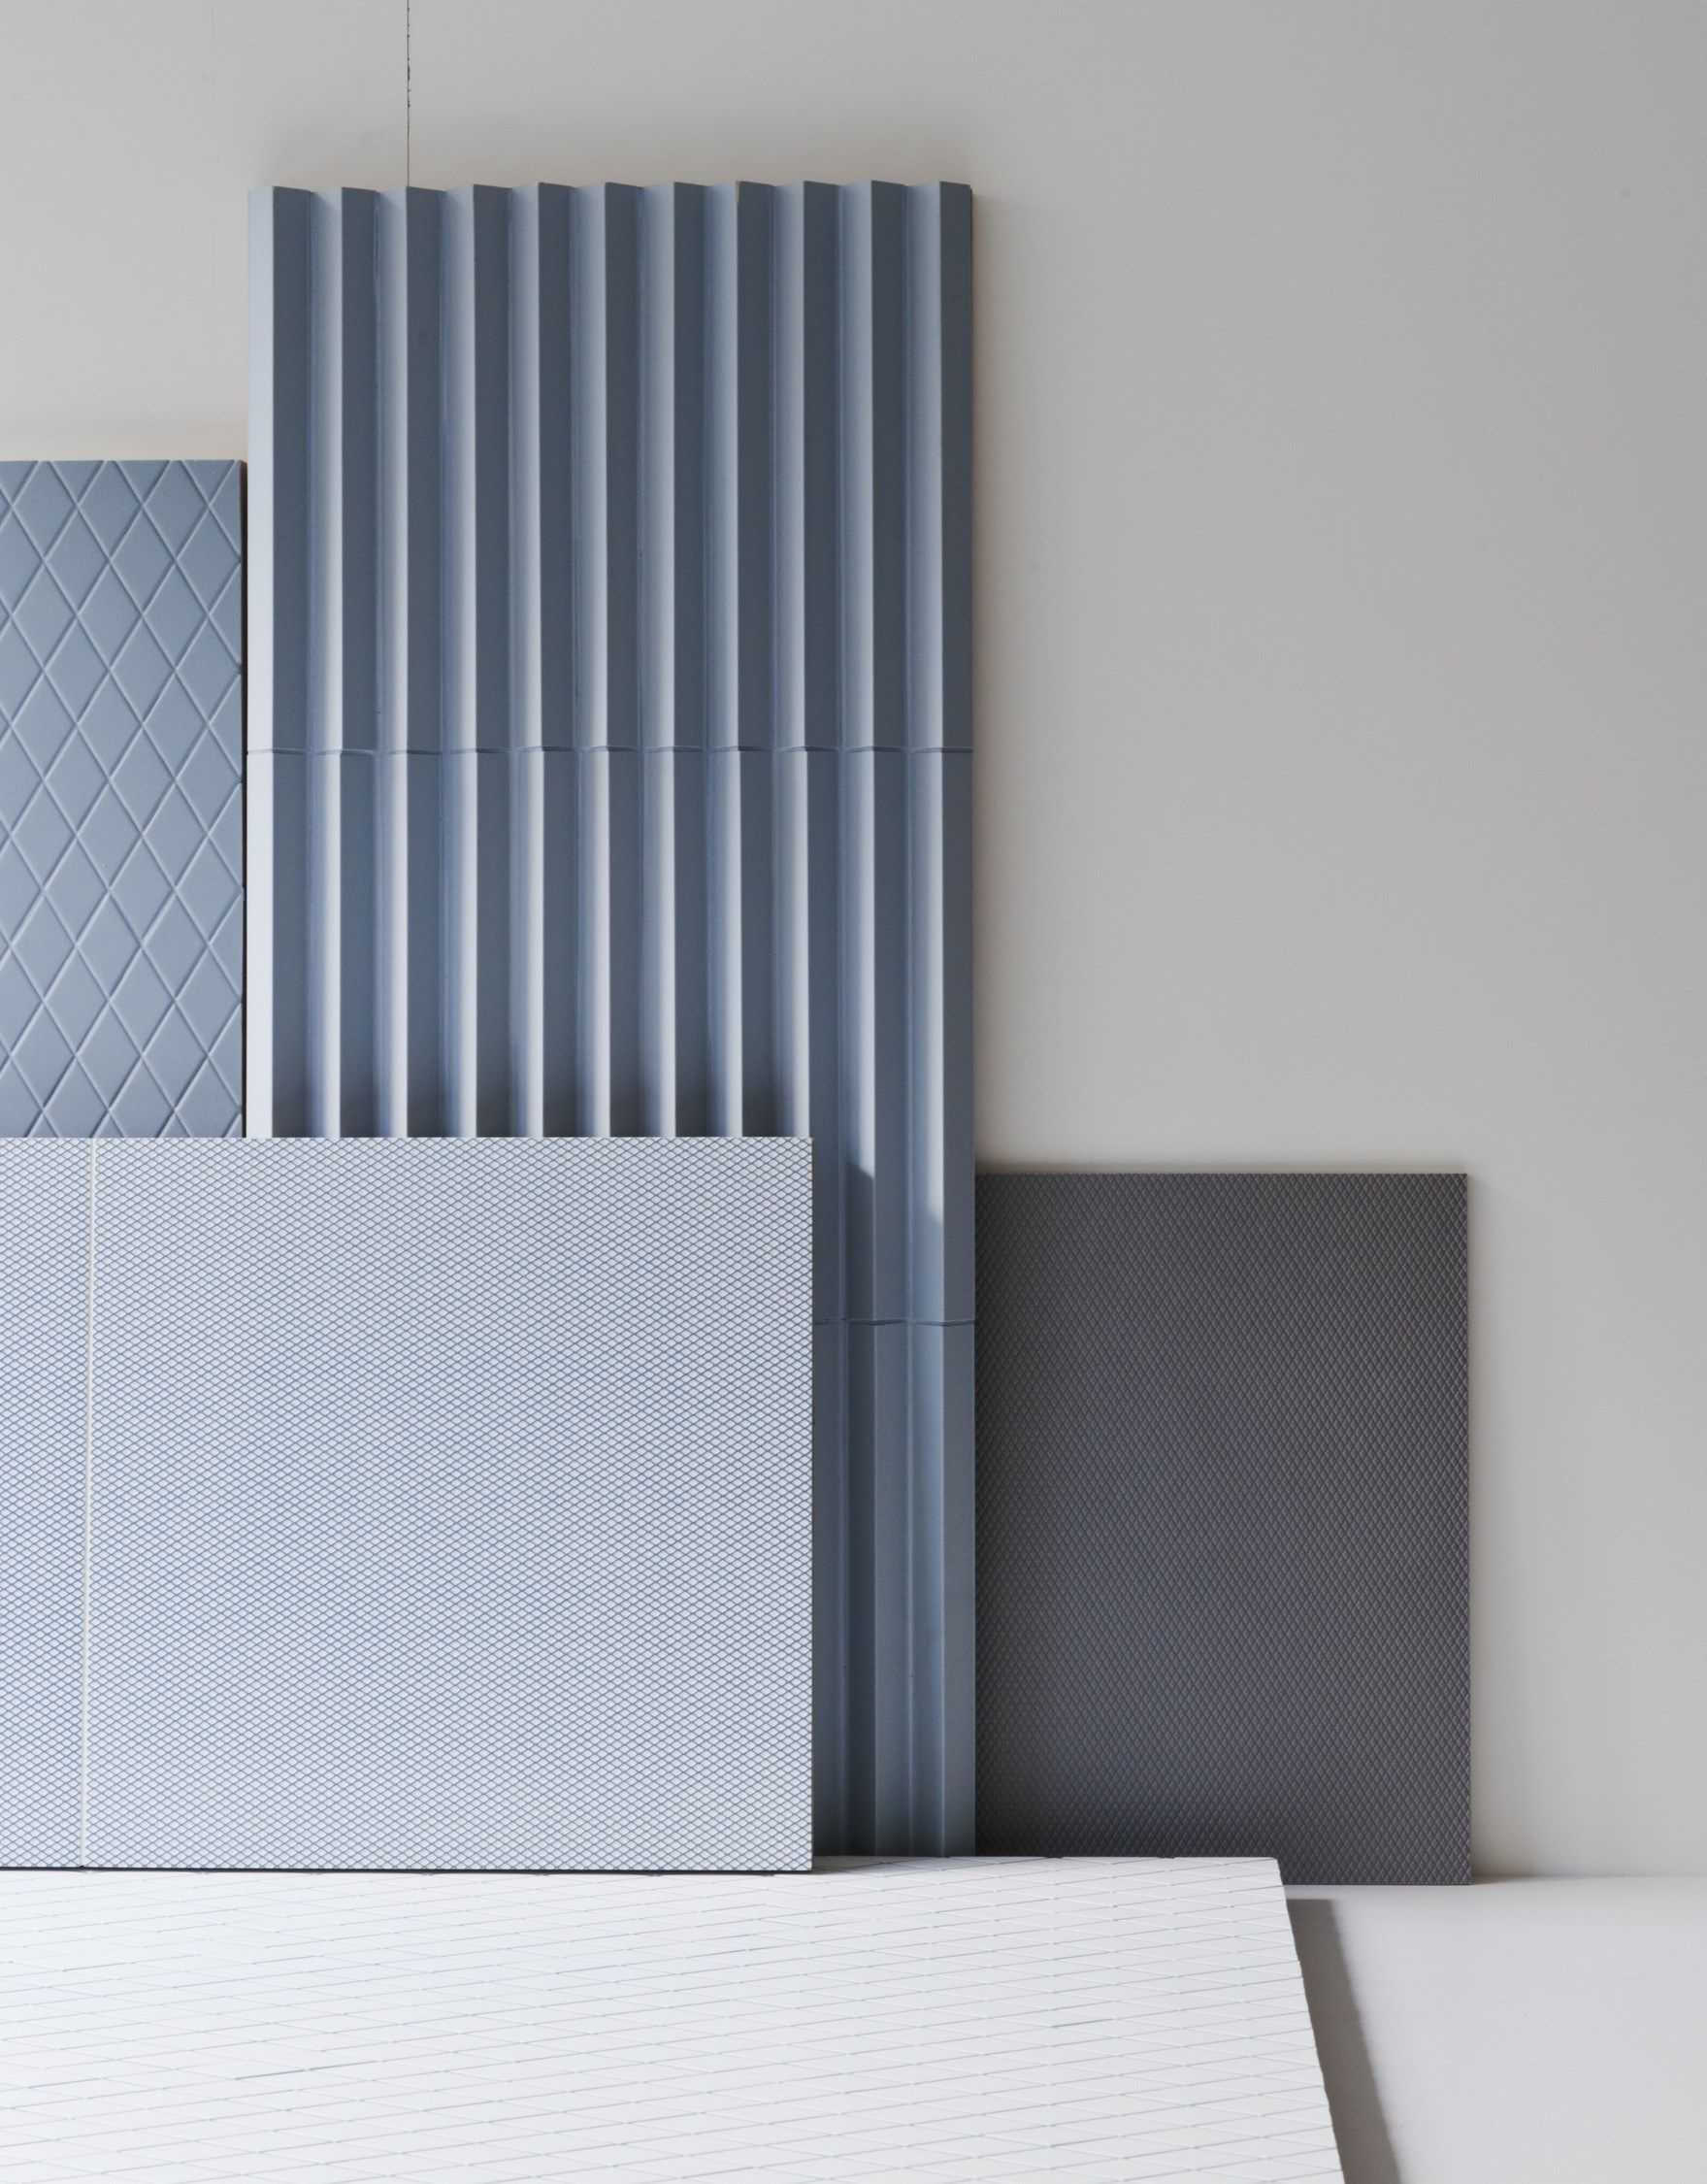 Pin by claudia on Backyard Offices | Pinterest | Wall cladding, 3d ...